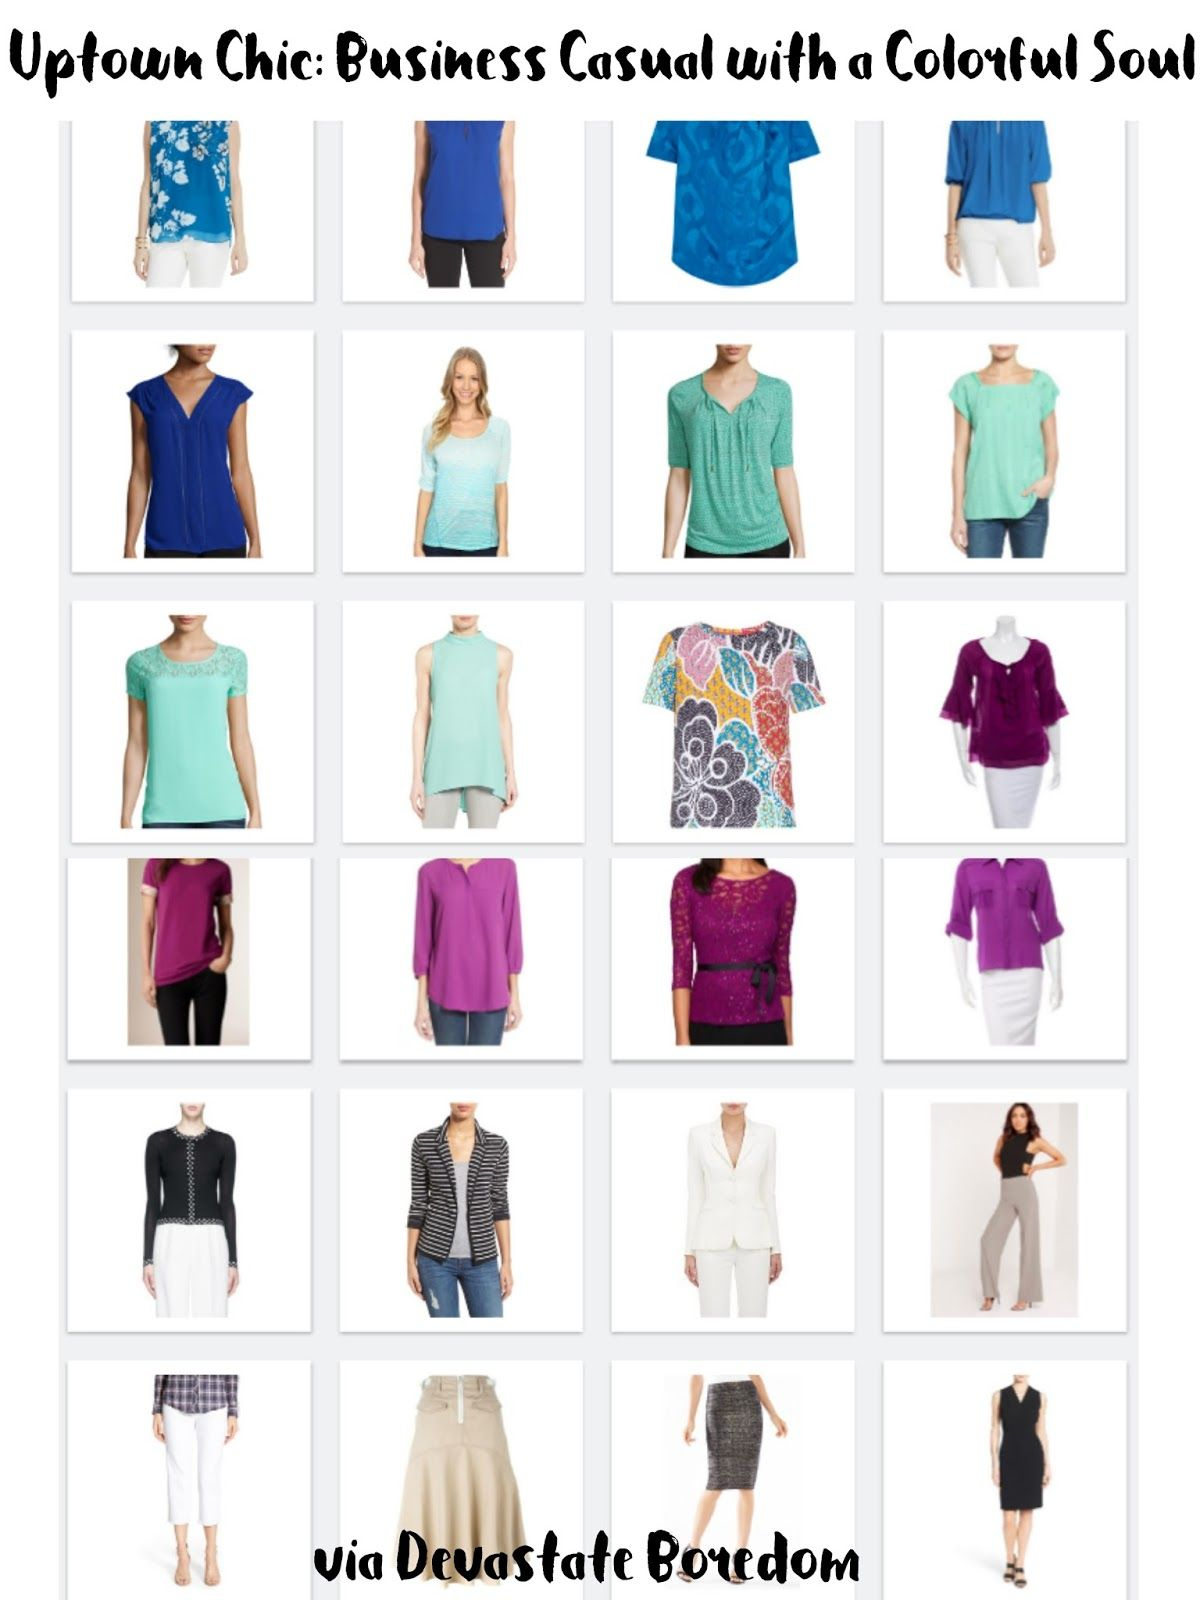 Business Casual Capsule Wardrobe Inspiration  Sample Minimalist Closet